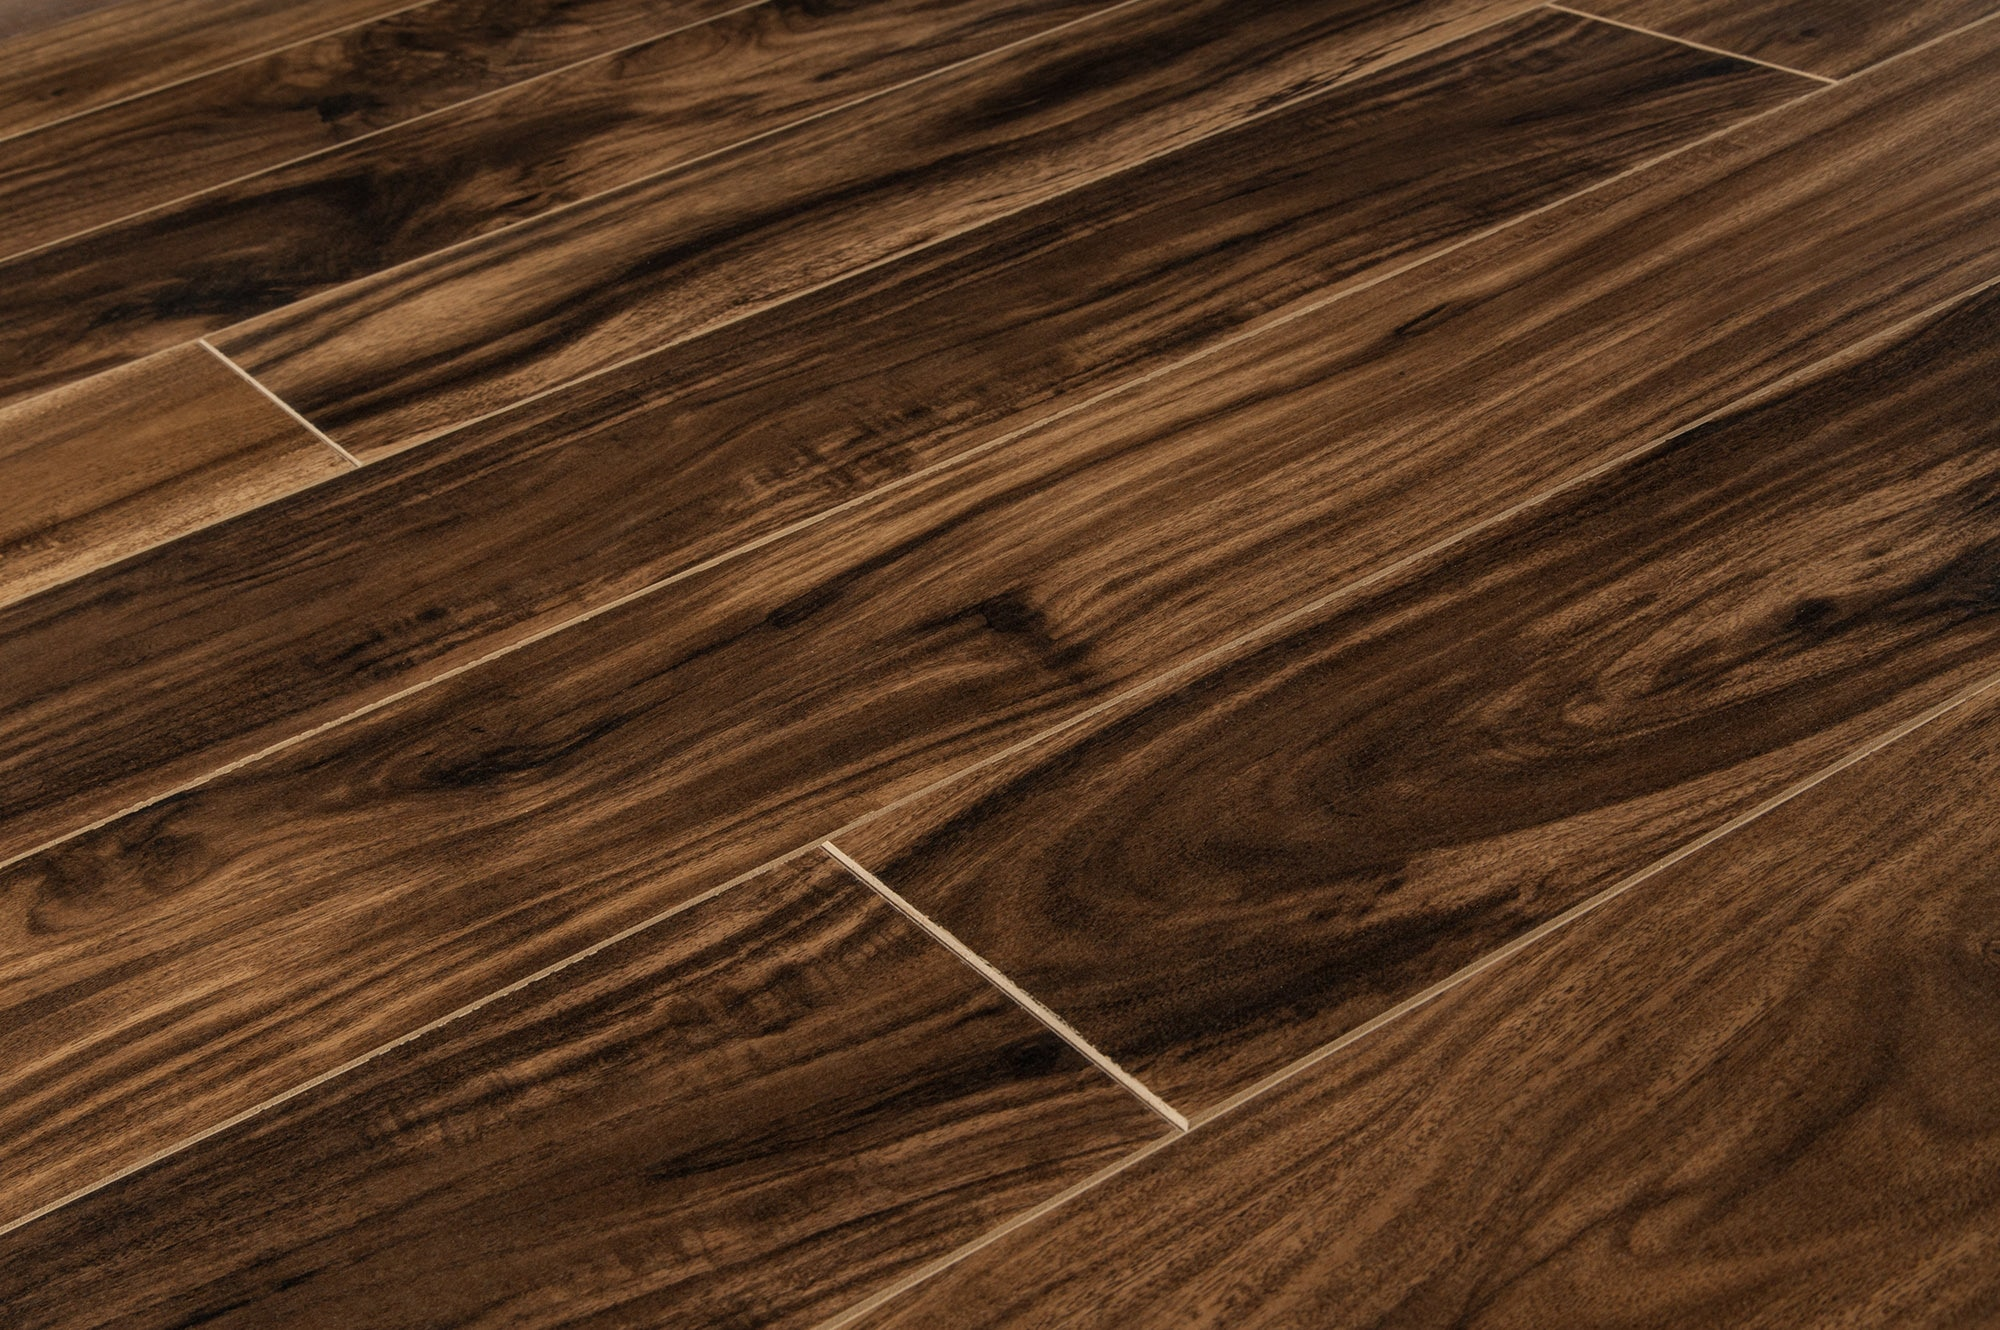 Toklo laminate 8mm equestrian collection cleveland bay for Toklo laminate flooring reviews